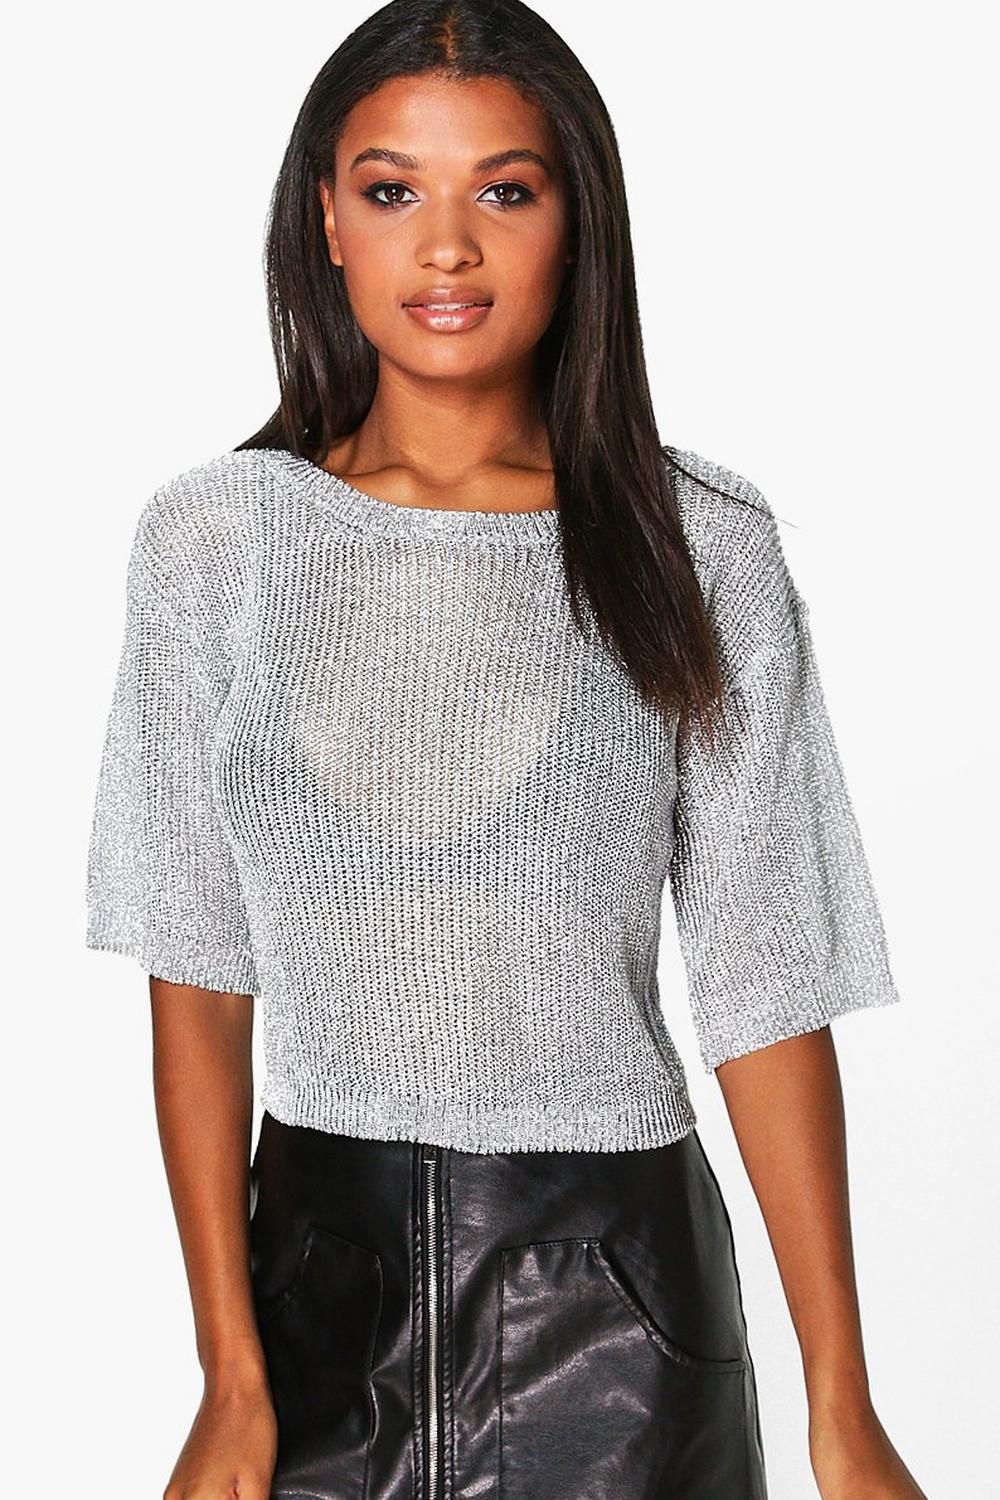 791a41cdec4200 Charlotte Short Sleeve Metallic Knit Top. Hover to zoom